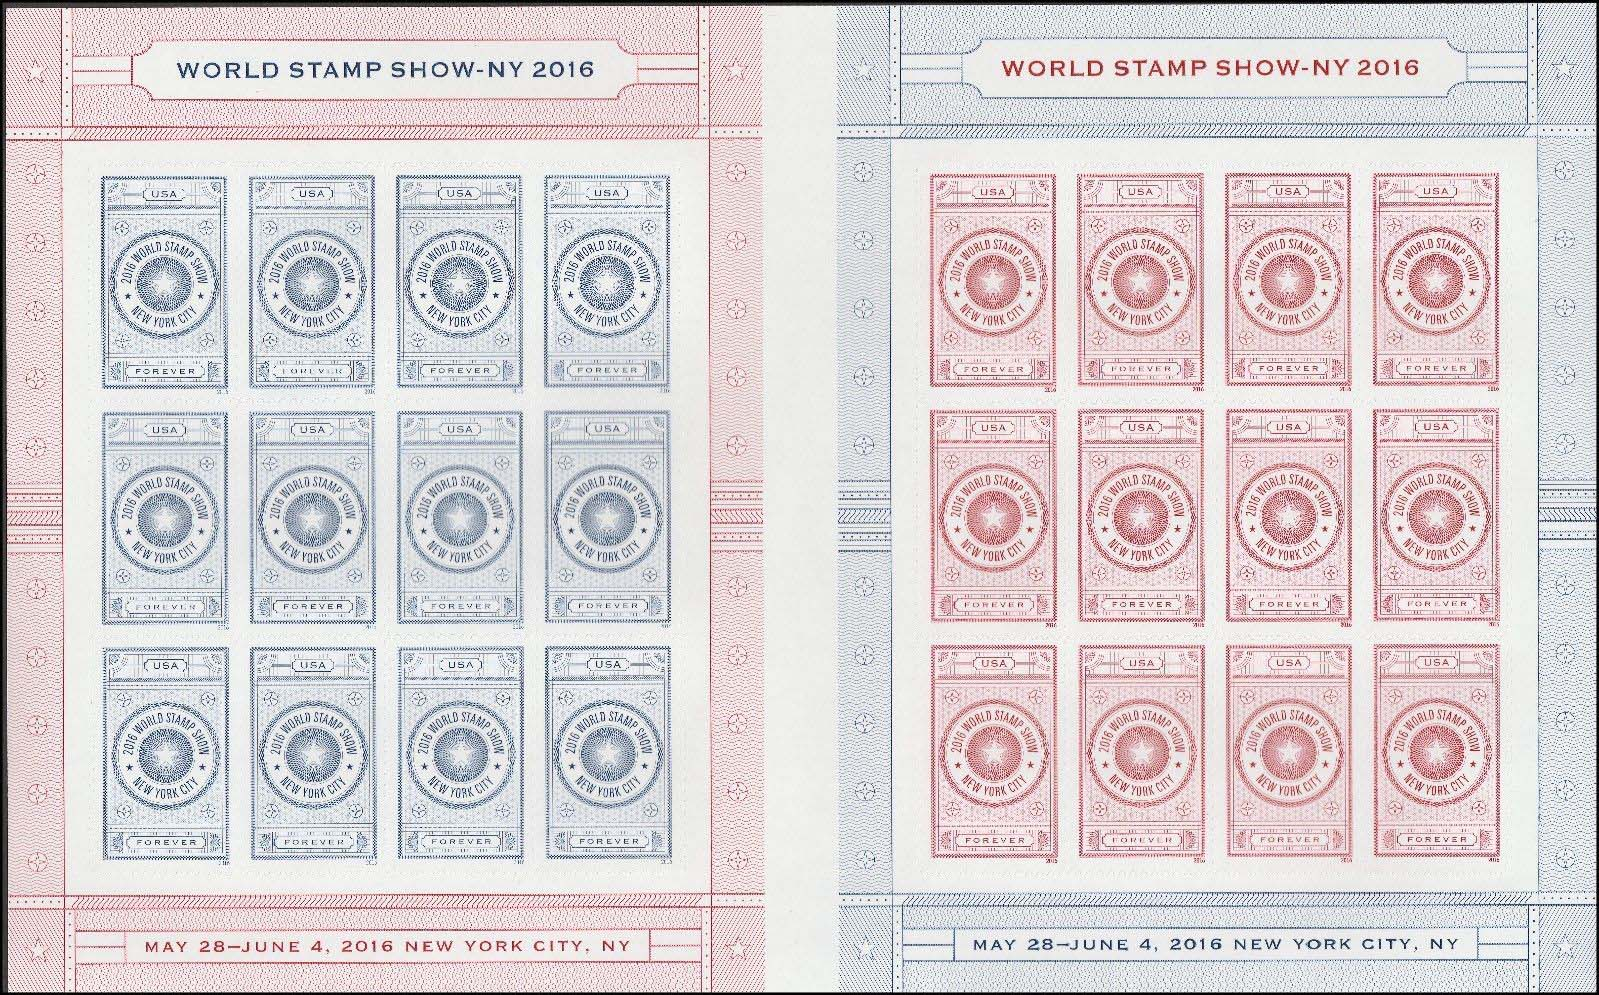 Scott #5062-5063, Forever Sheet of 24 (2 panes of 12), World Stamp Show, NY 2016